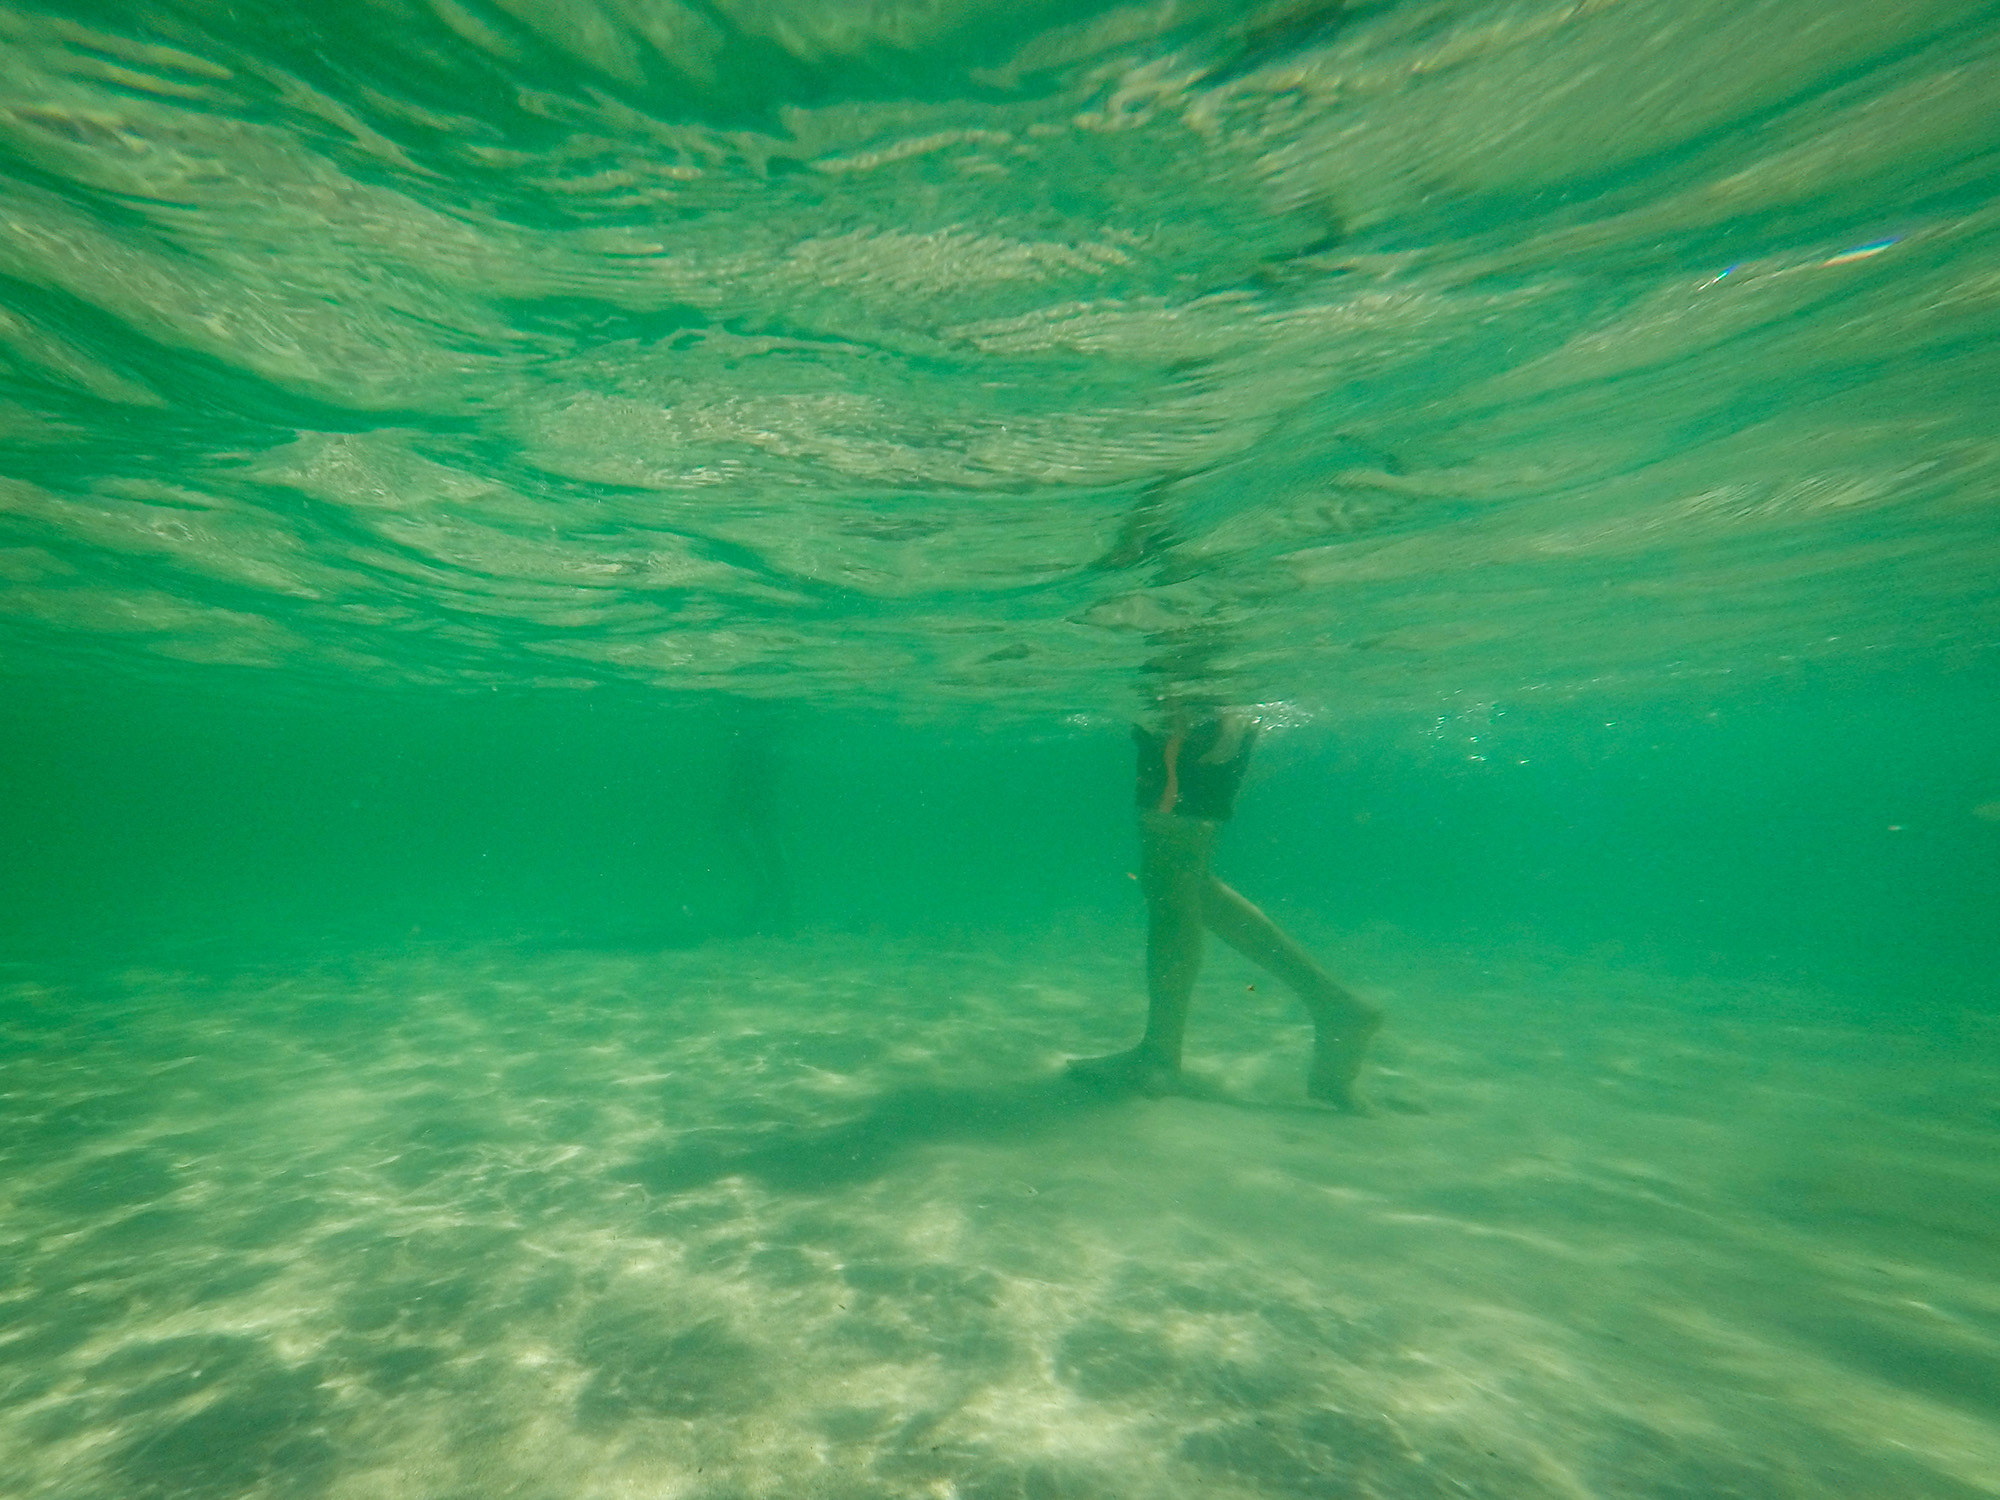 A pair of legs walks on sand in green water in an underwater photograph